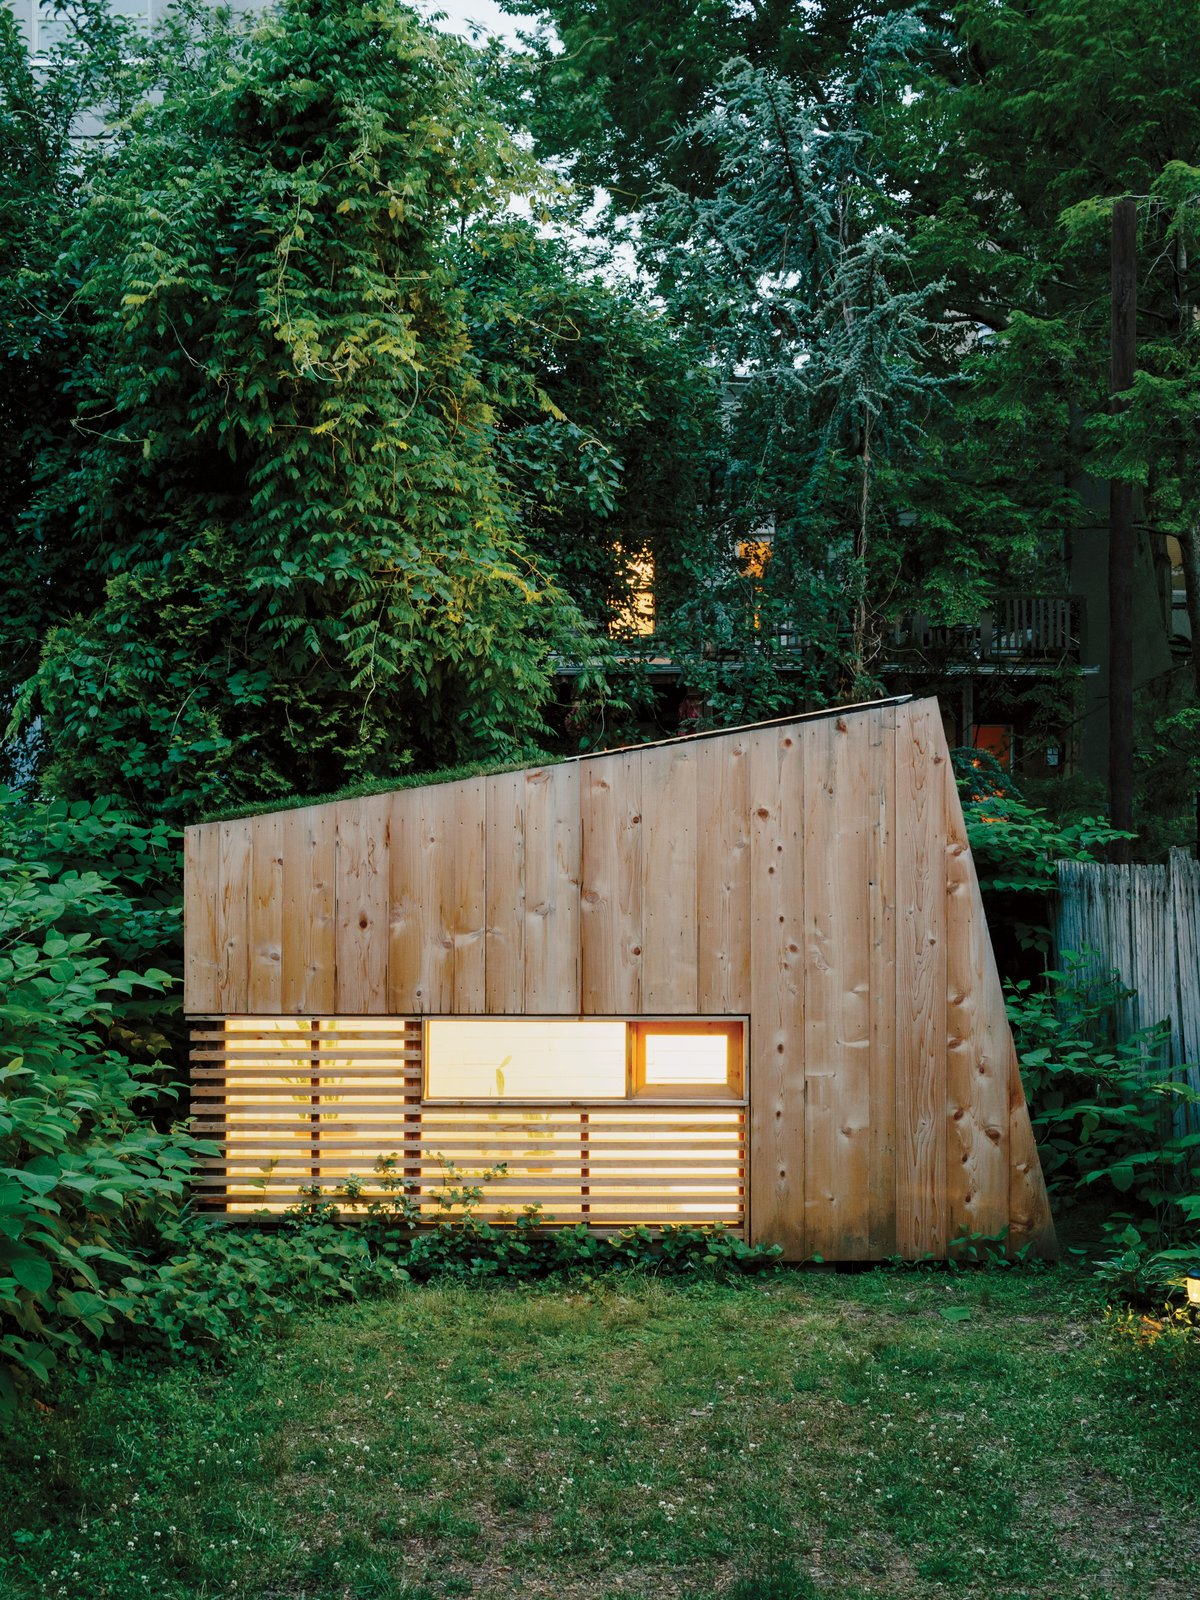 An Architect Builds His Own Backyard Oasis From Salvaged Materials